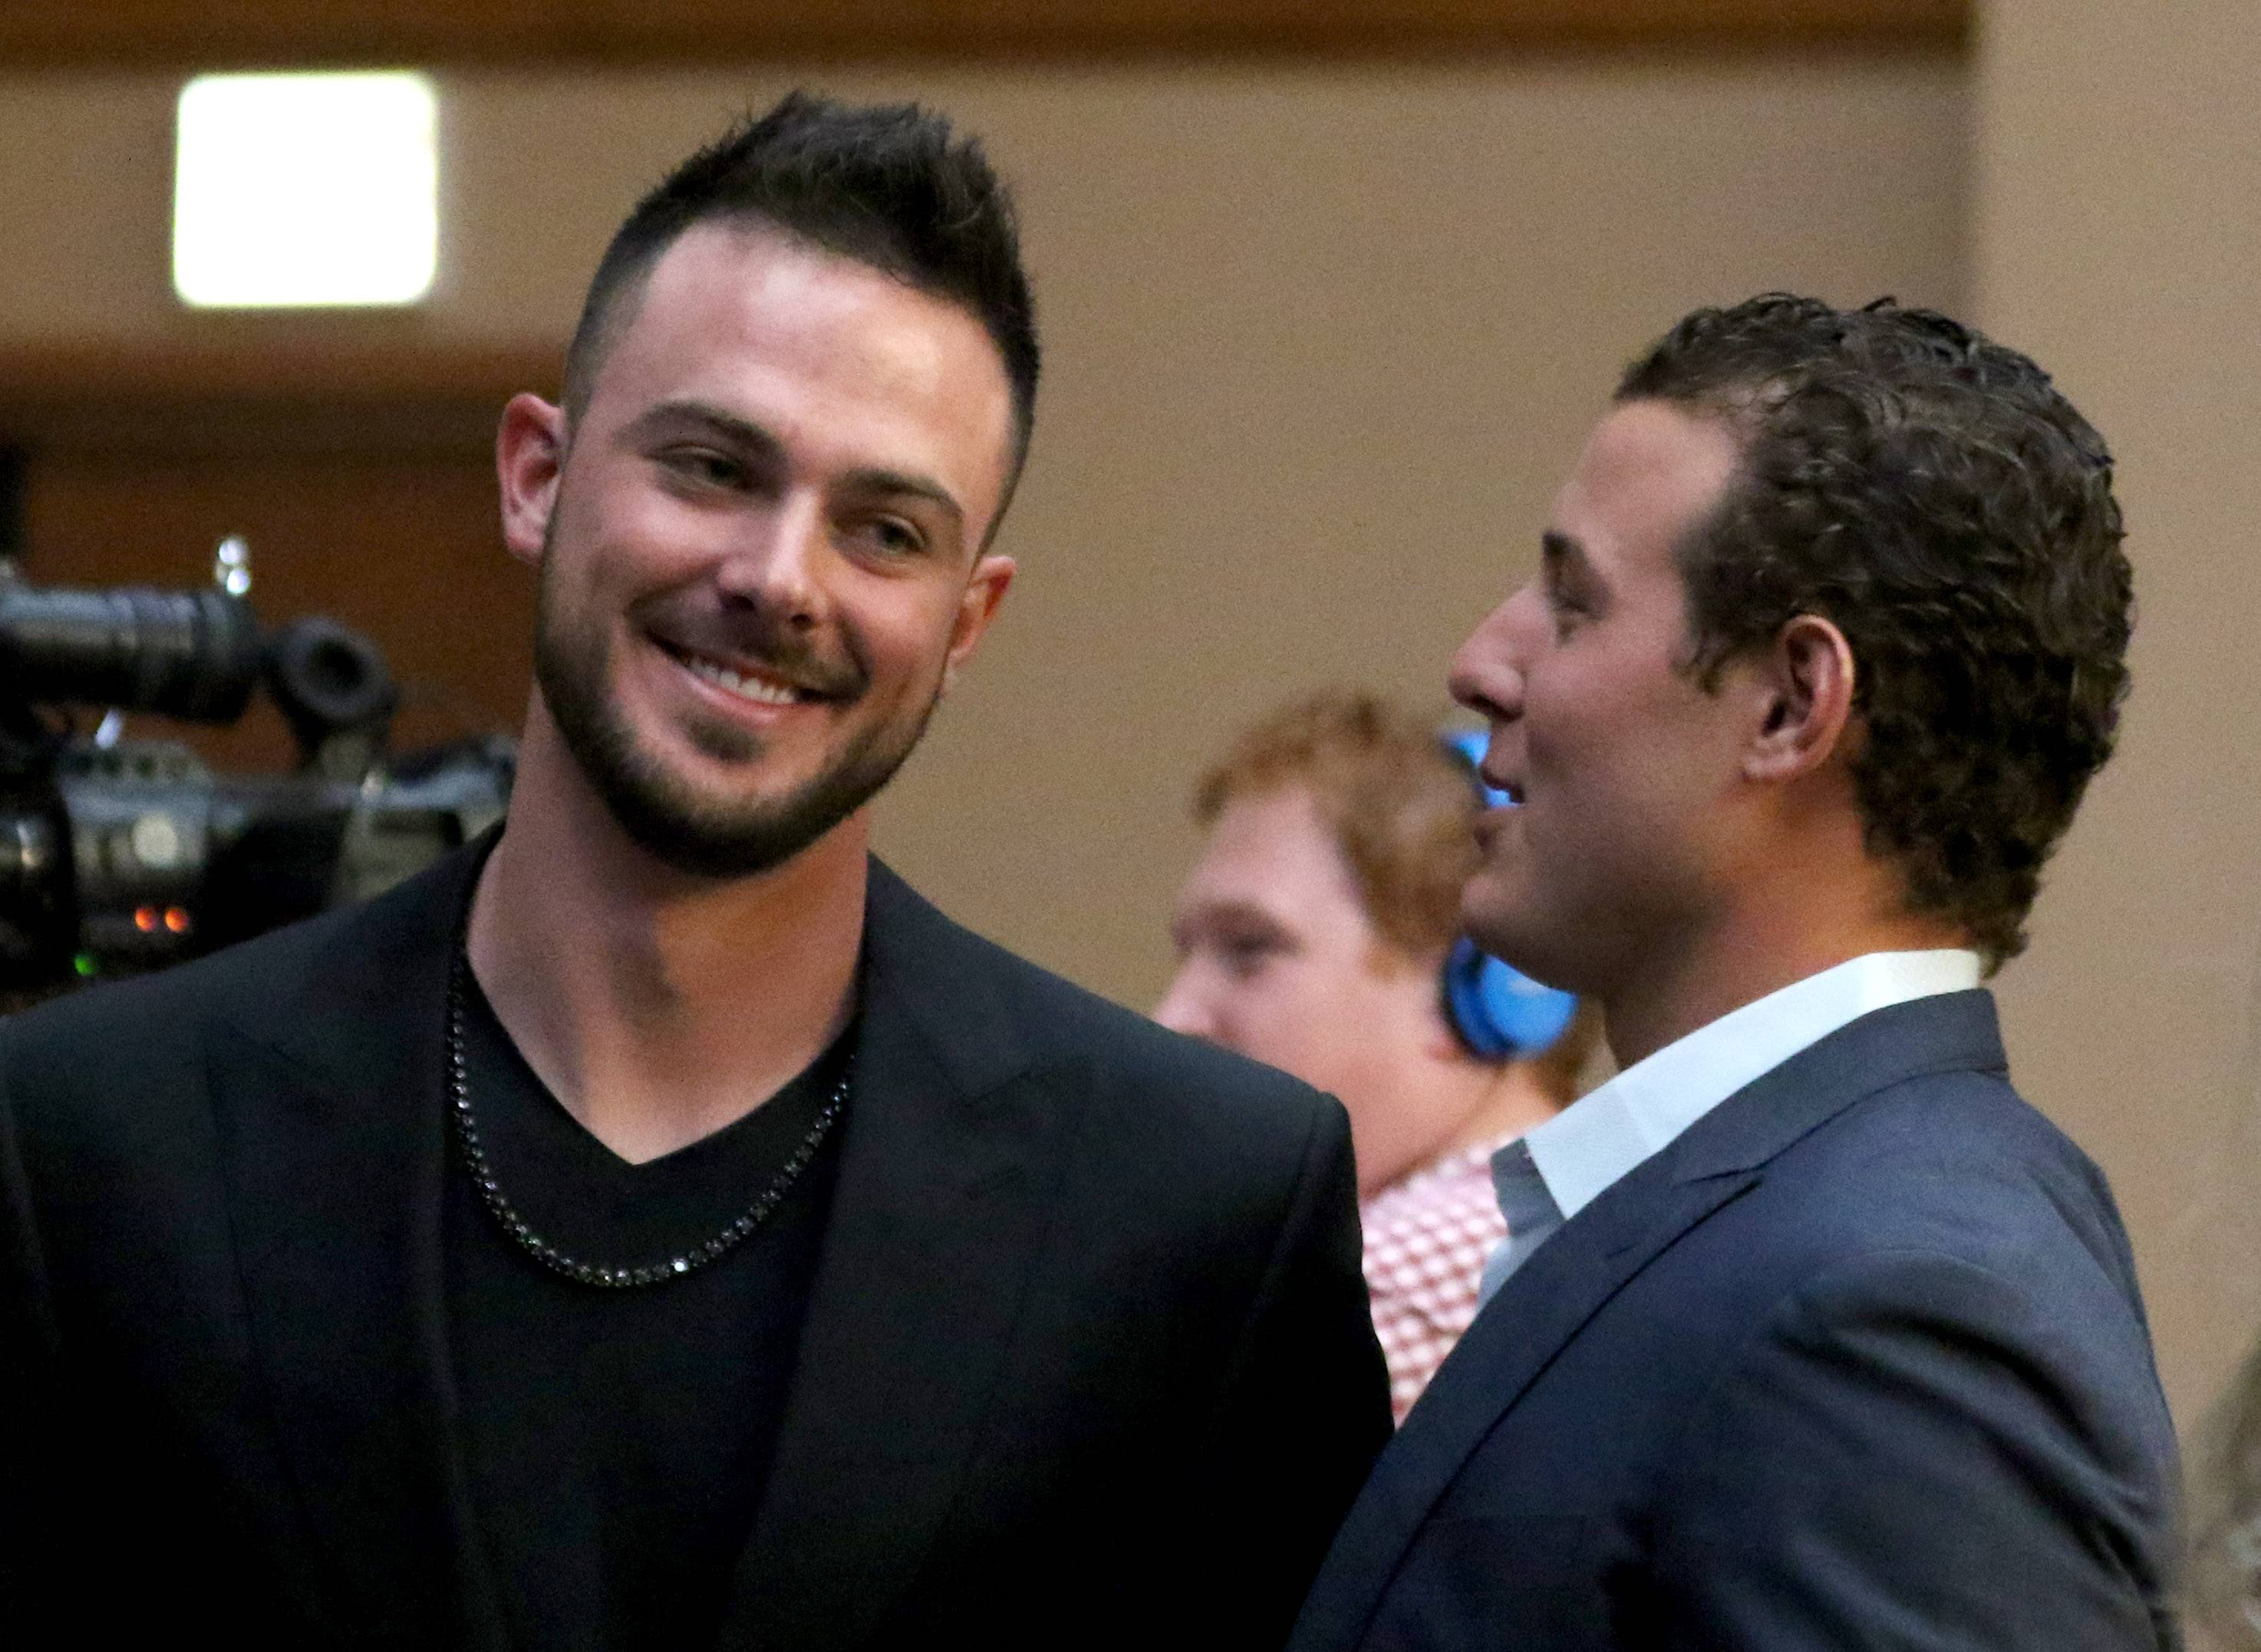 Kris Bryant and Anthony Rizzo greet each other during opening night of the 33rd annual Cubs Convention in Chicago Friday night.